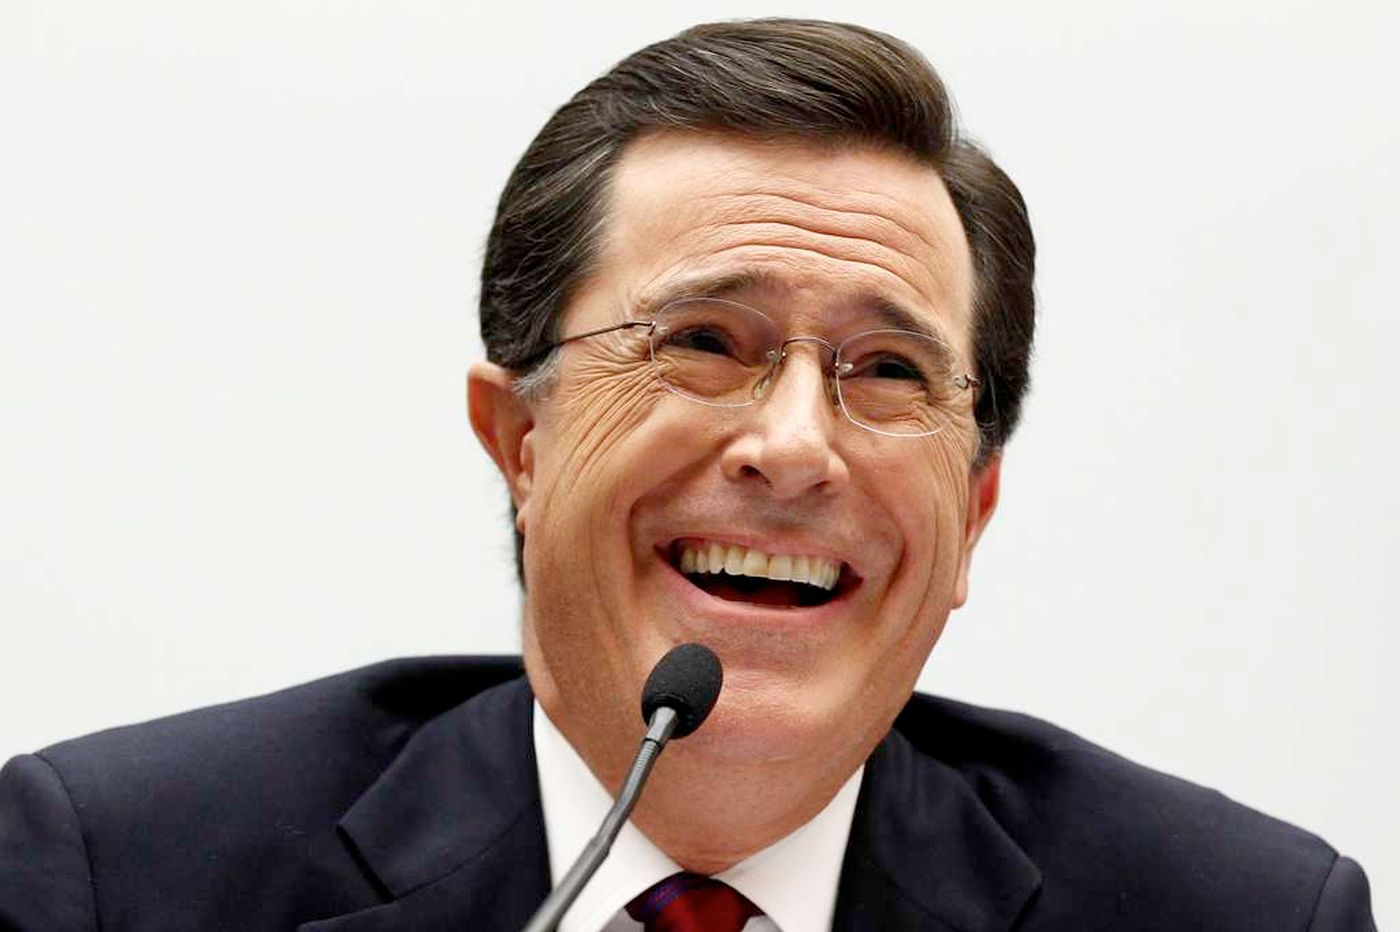 Penn study: Colbert's civics lesson 'not just a proliferation of jokes'